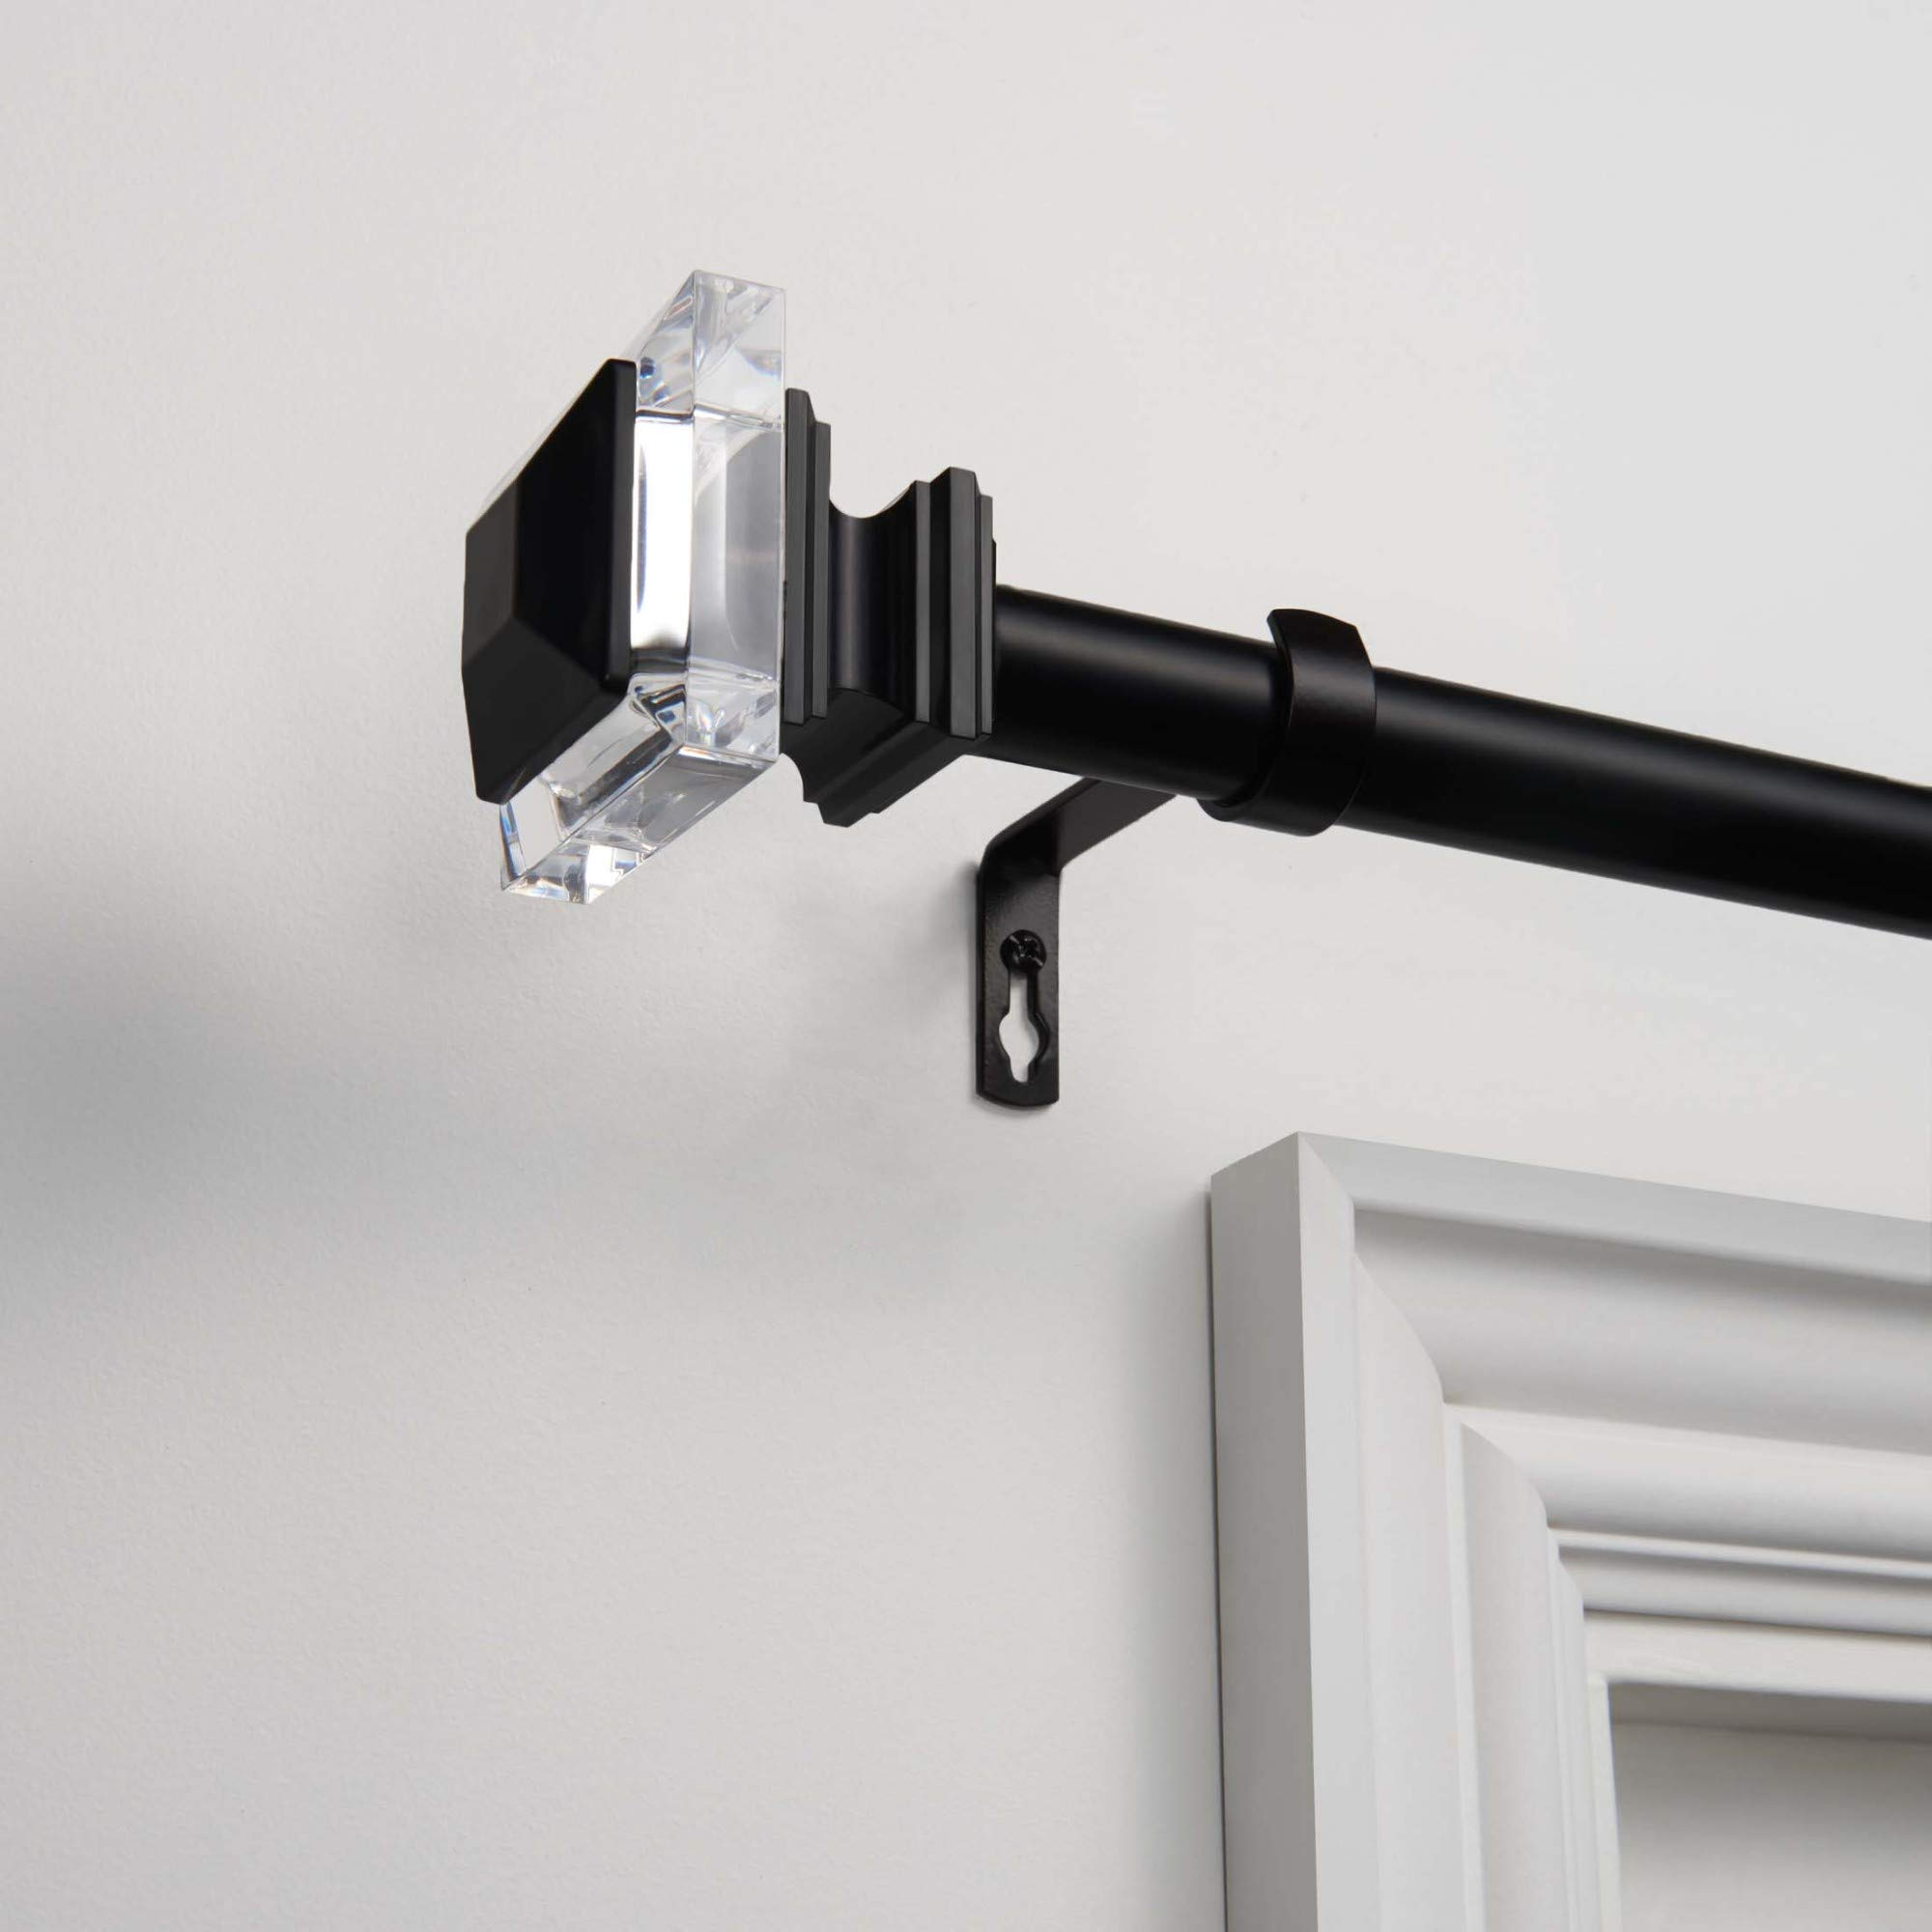 Exclusive Home Curtains Prism Curtain Rod and Finial Set, 36'' to 72'', Matte Black by Exclusive Home Curtains